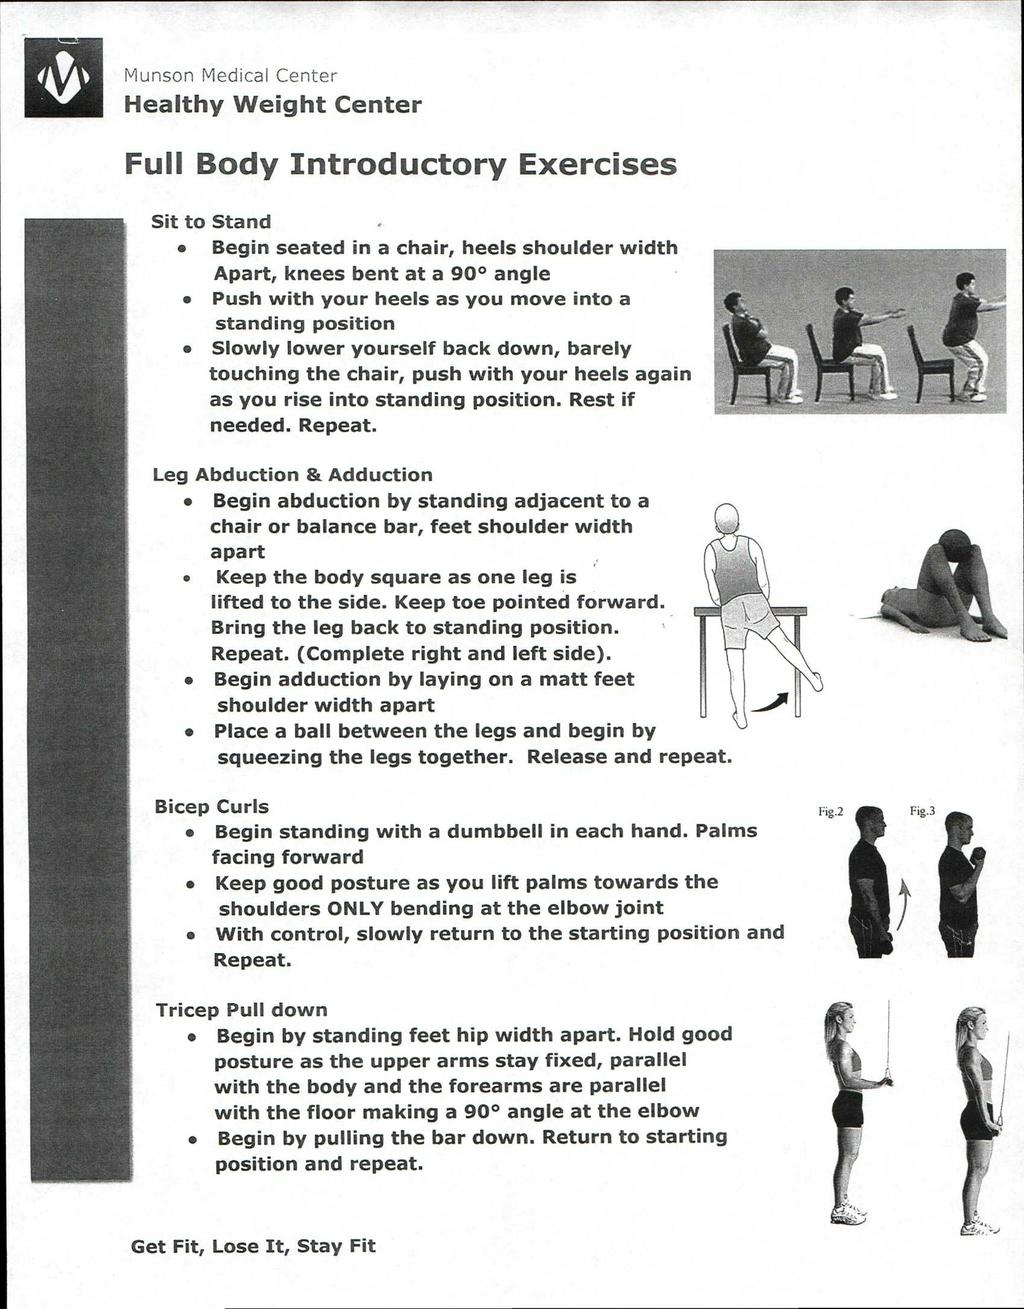 Full Body Introductory Exercises Sit to Stand Begin seated in a chair, heels shoulder width Apart, knees bent at a 90 angle Push with your heels as you move into a standing position Slowly lower